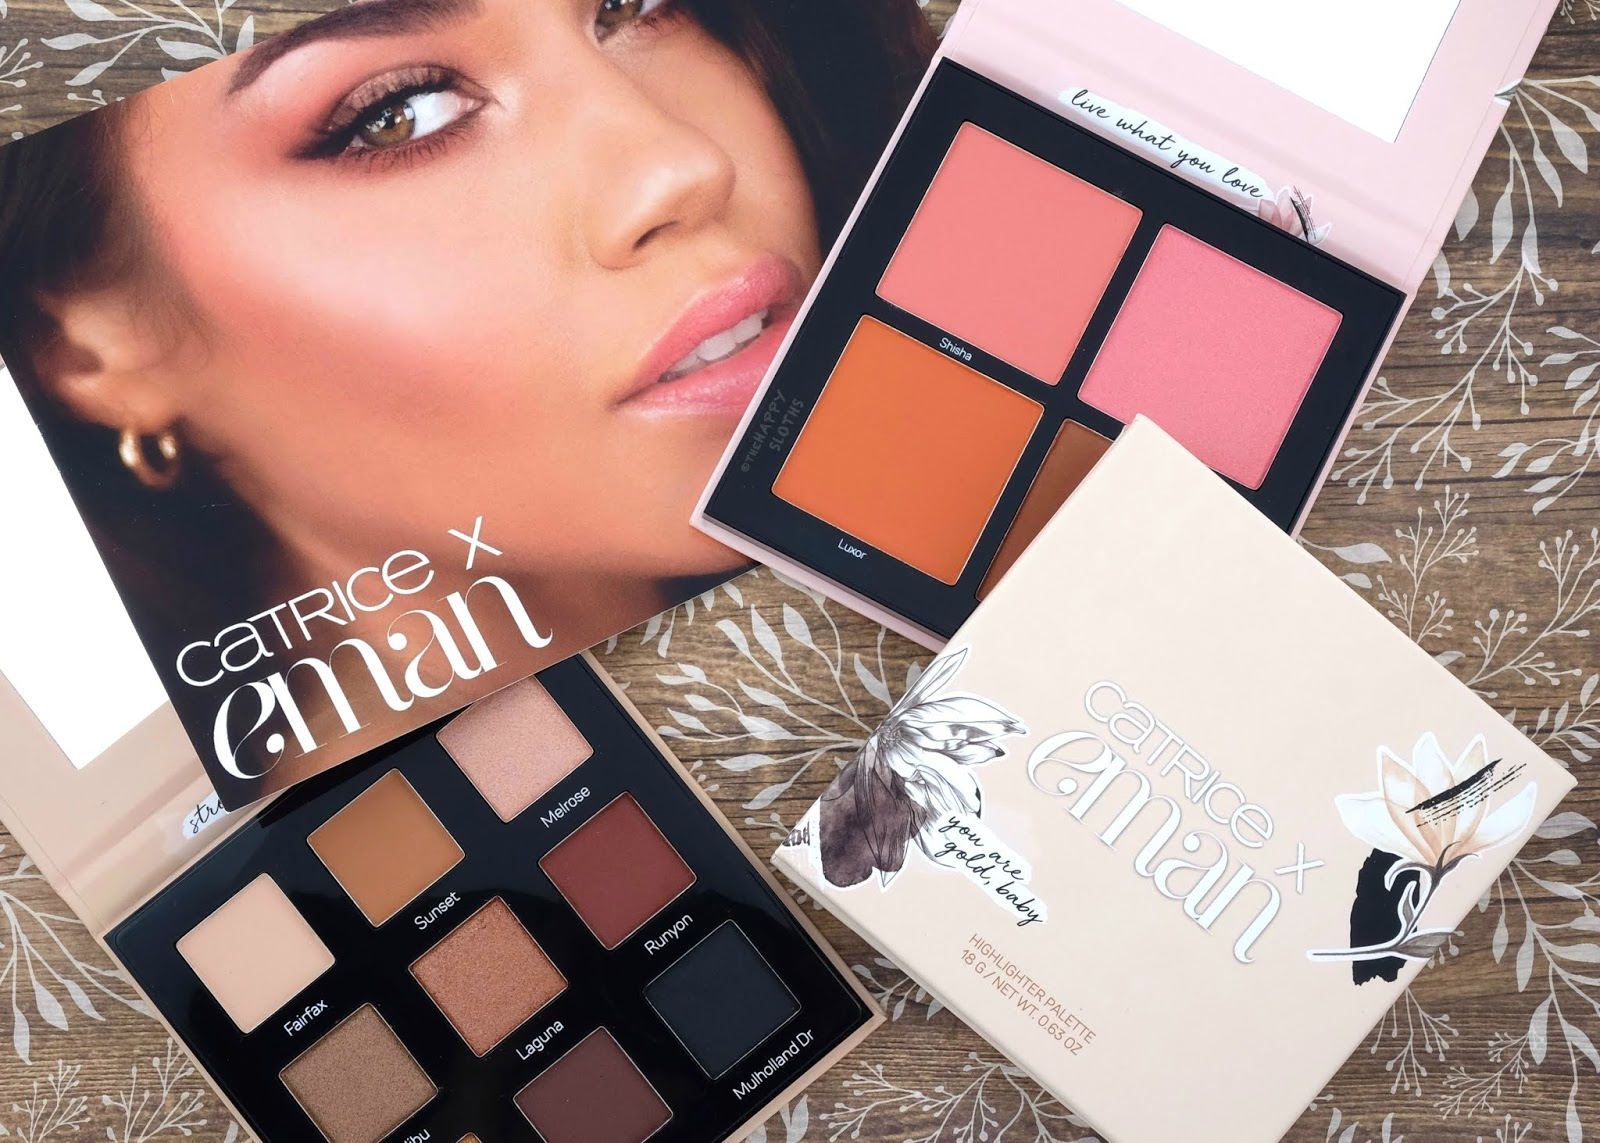 Catrice x Eman | Eyeshadow Palette, Blush Palette & Highlighter Palette: Review and Swatches